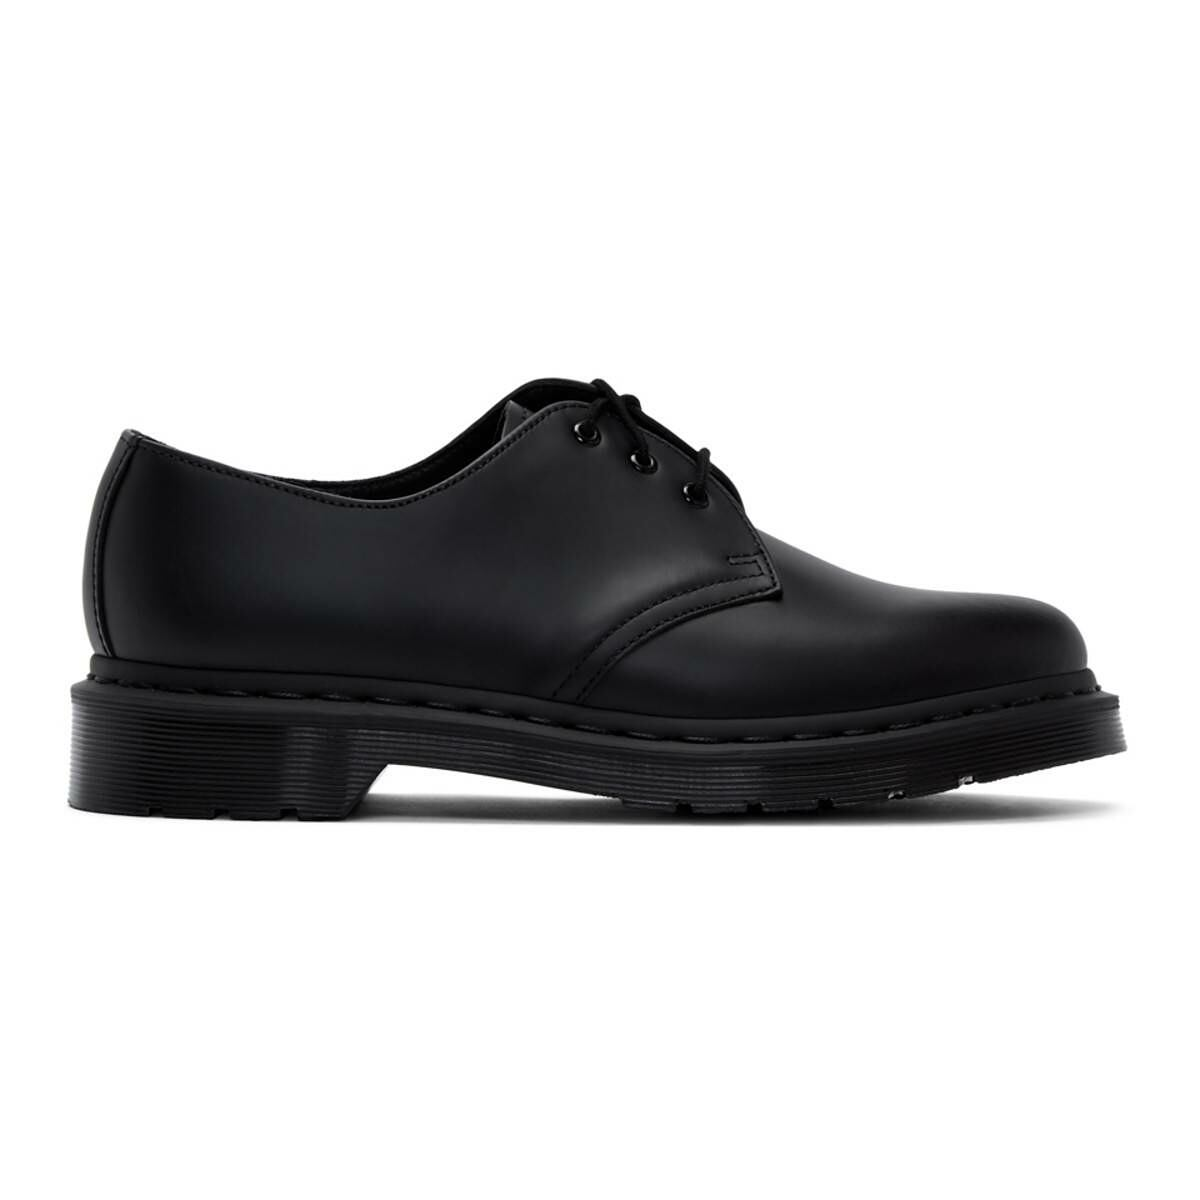 Dr. Martens Black 1461 Mono Derbys Ssense USA MEN Men SHOES Mens FORMAL SHOES